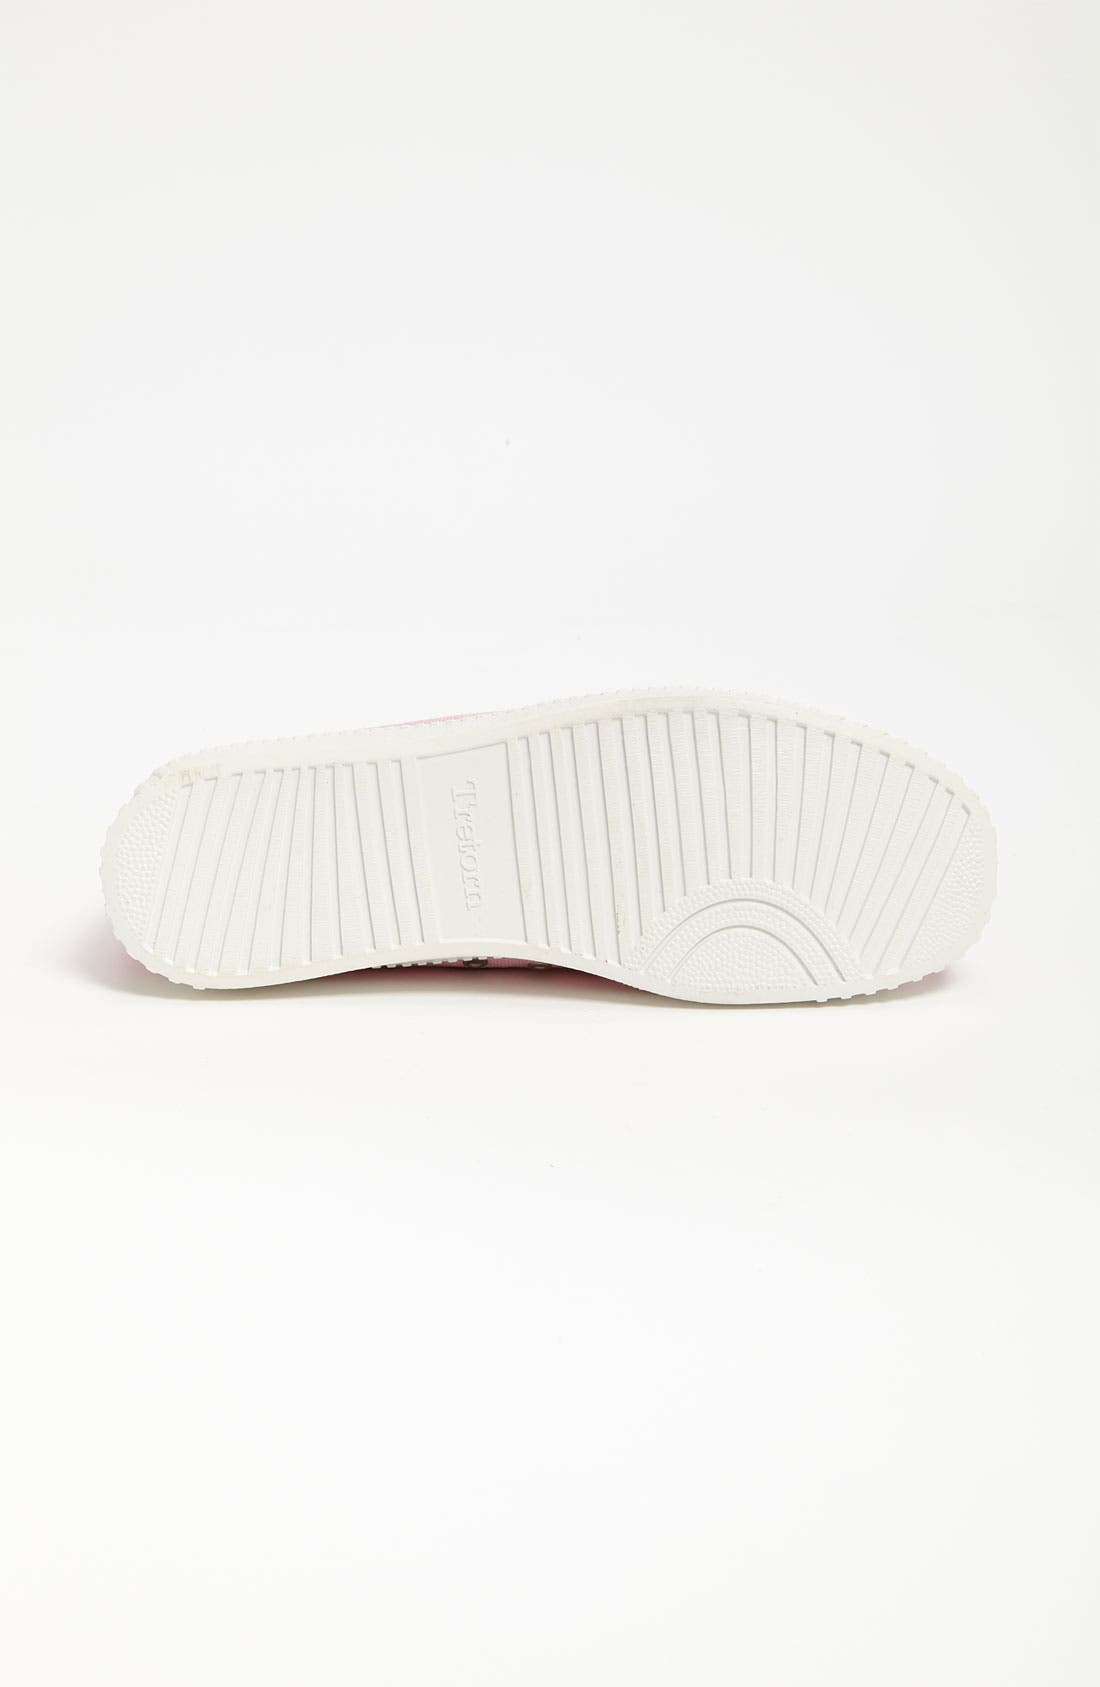 'Nylite' Sneaker,                             Alternate thumbnail 41, color,